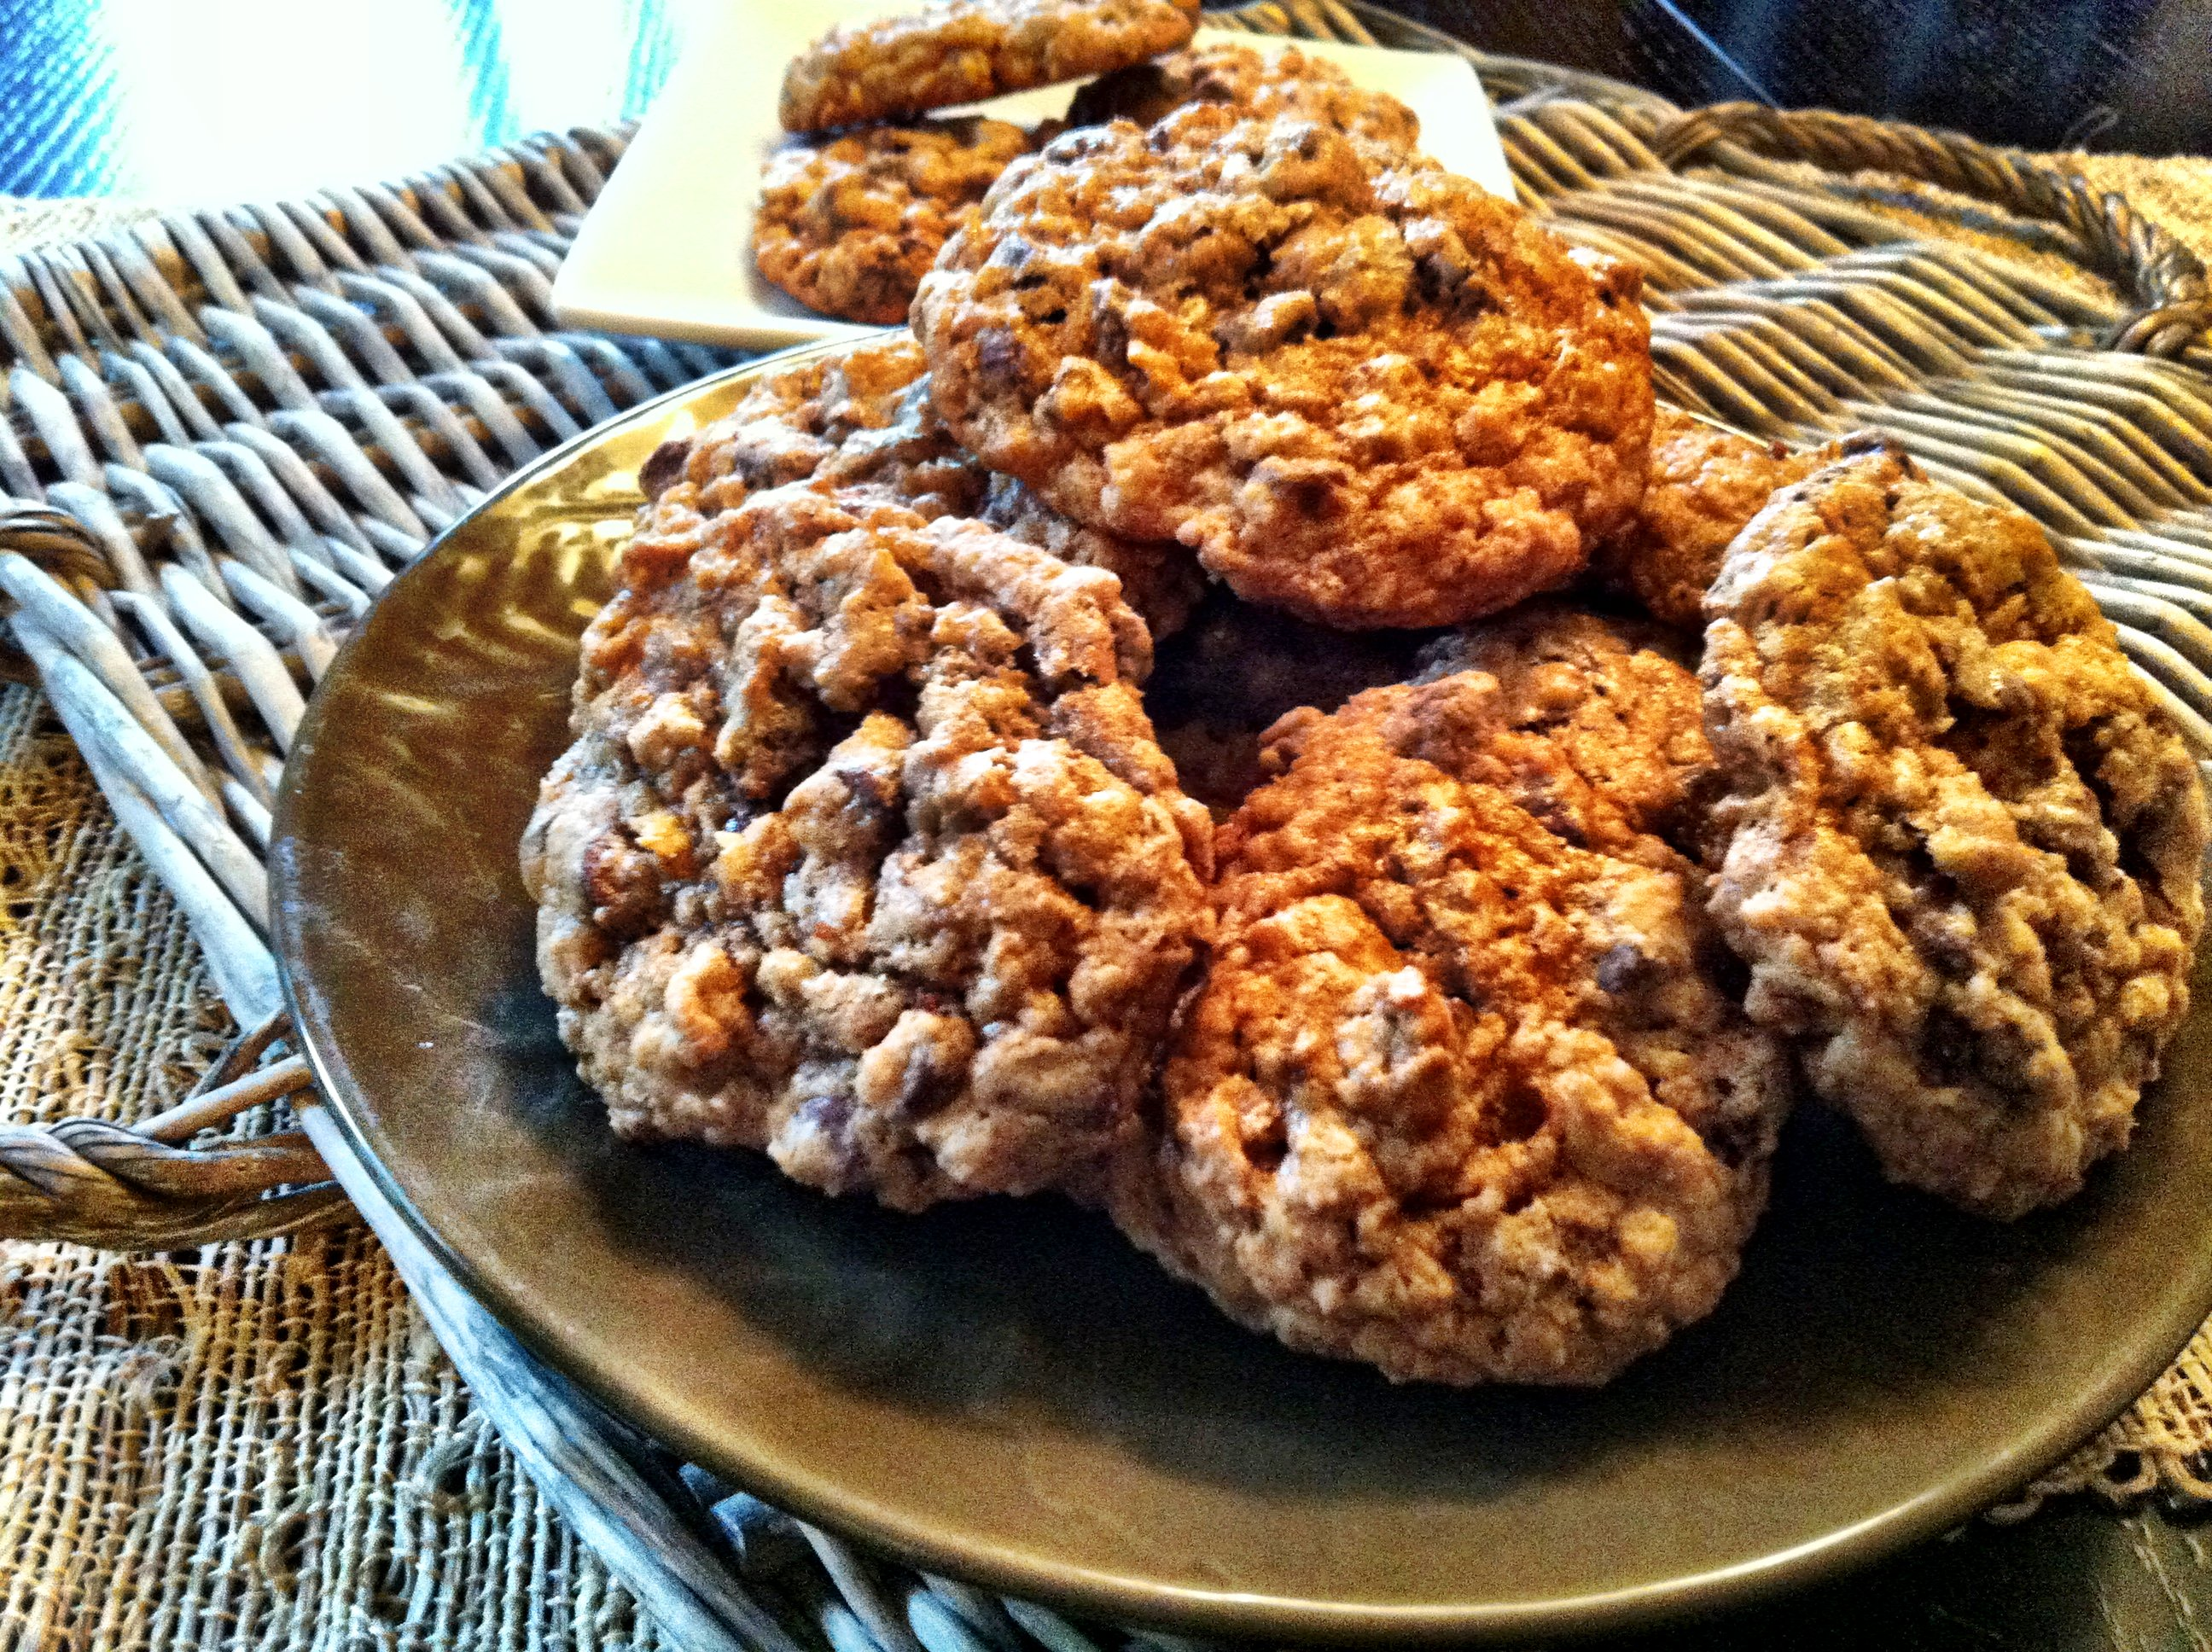 ... Whole Wheat Oatmeal Chocolate Chip Cookies were perfect (I ate more